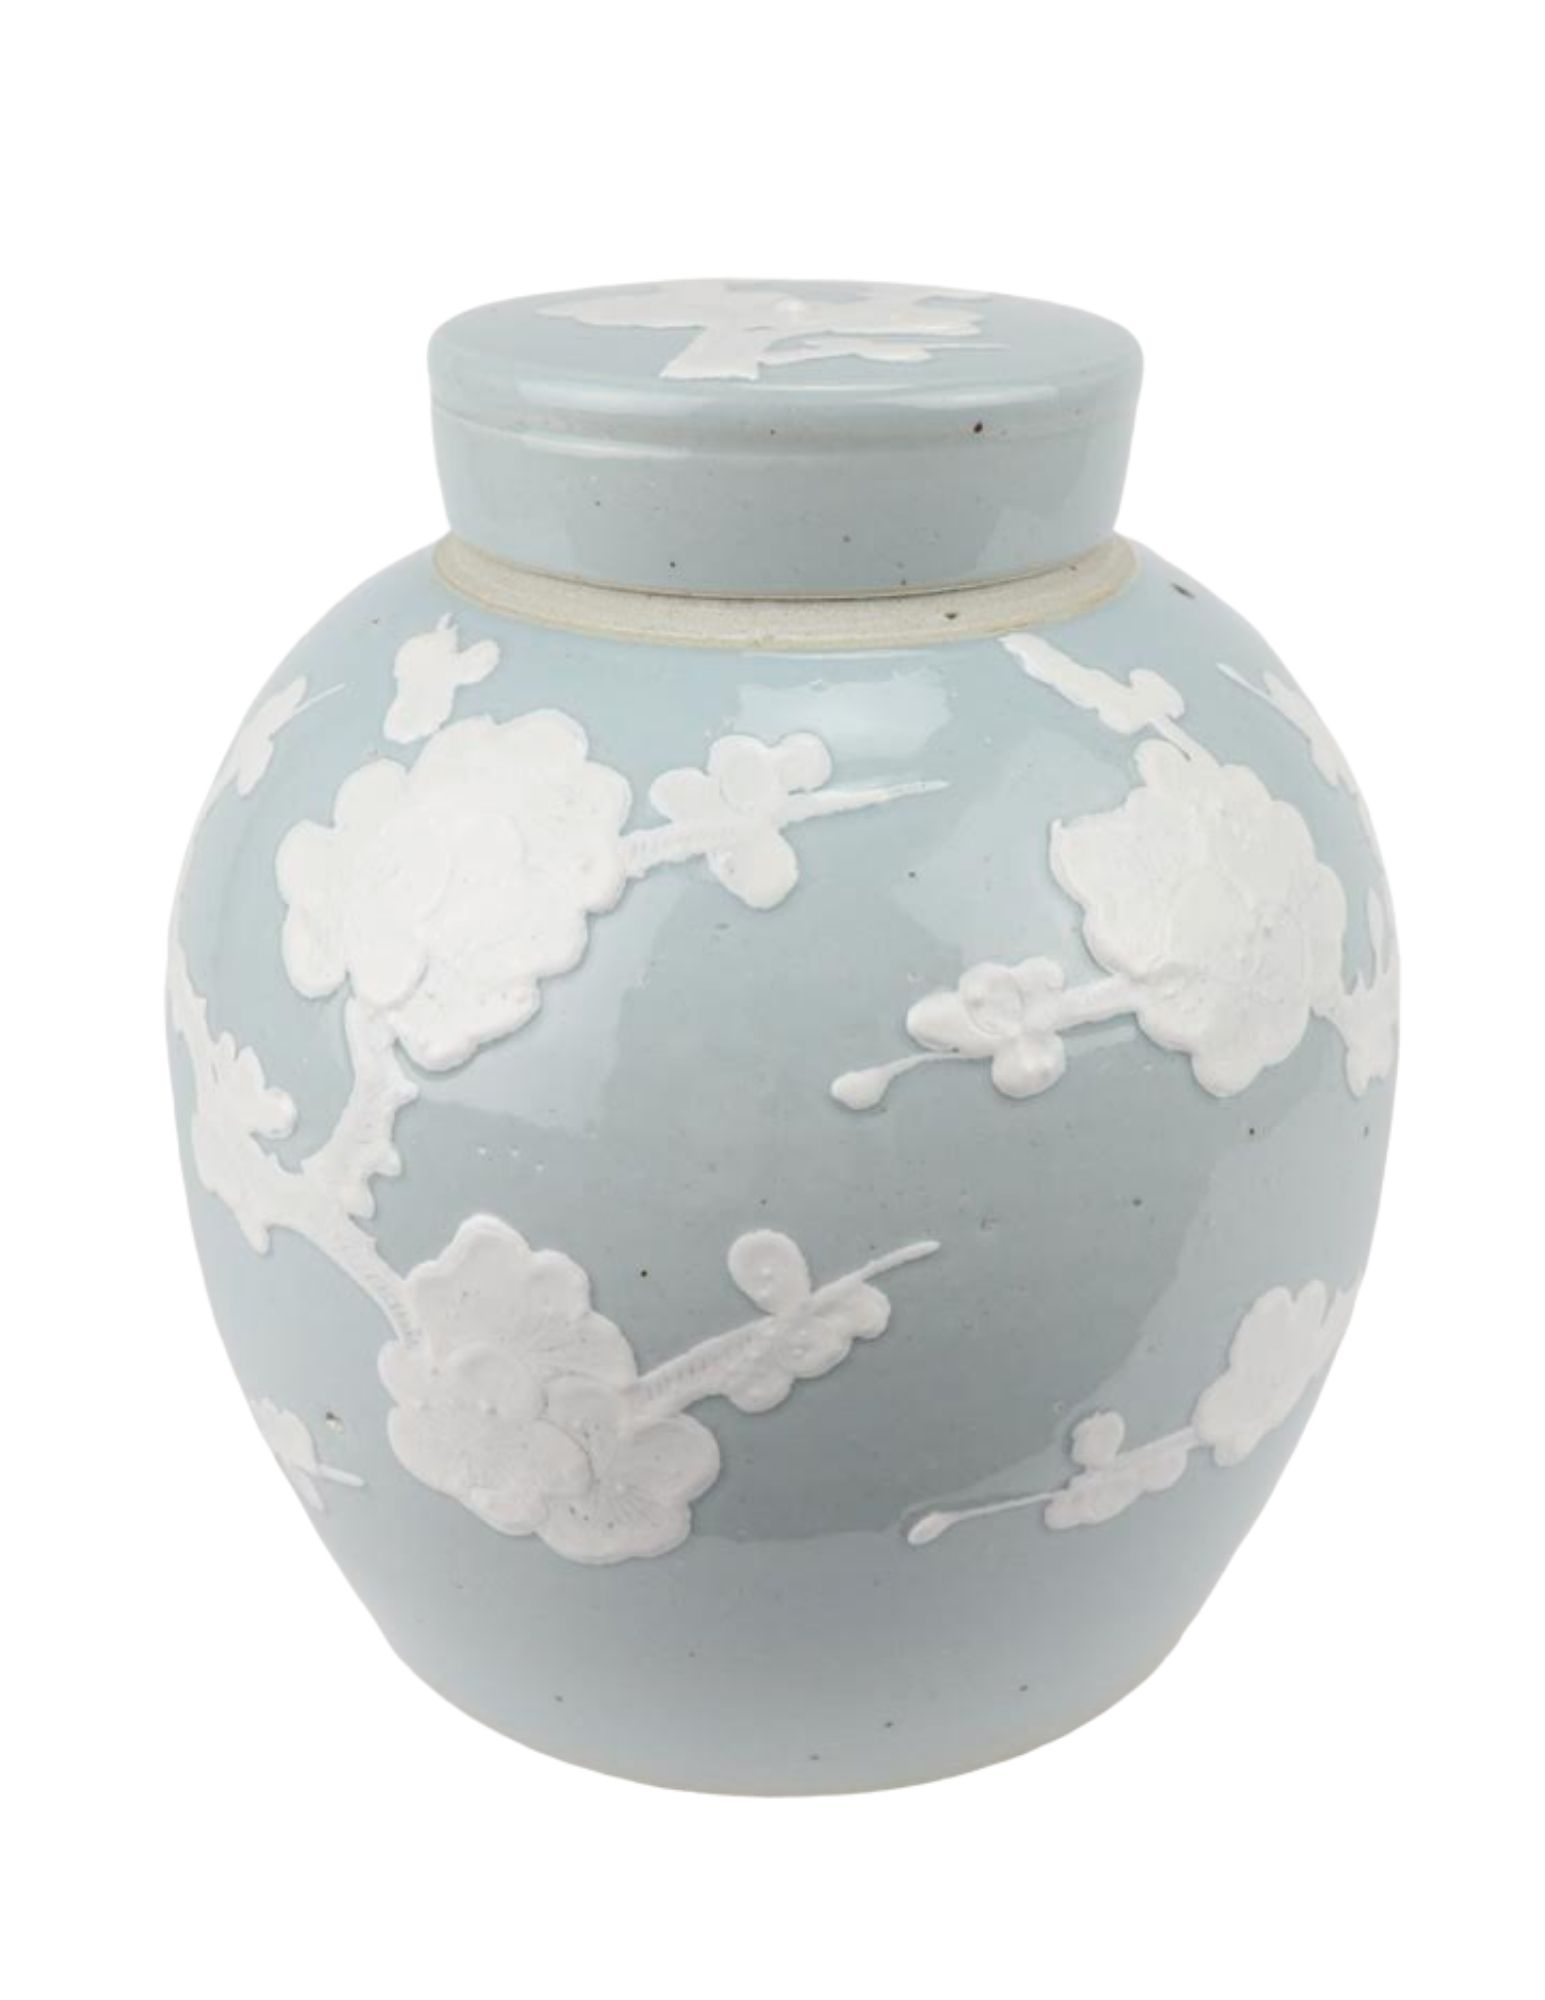 Incredible new flat top pastel ginger jar in pale blue